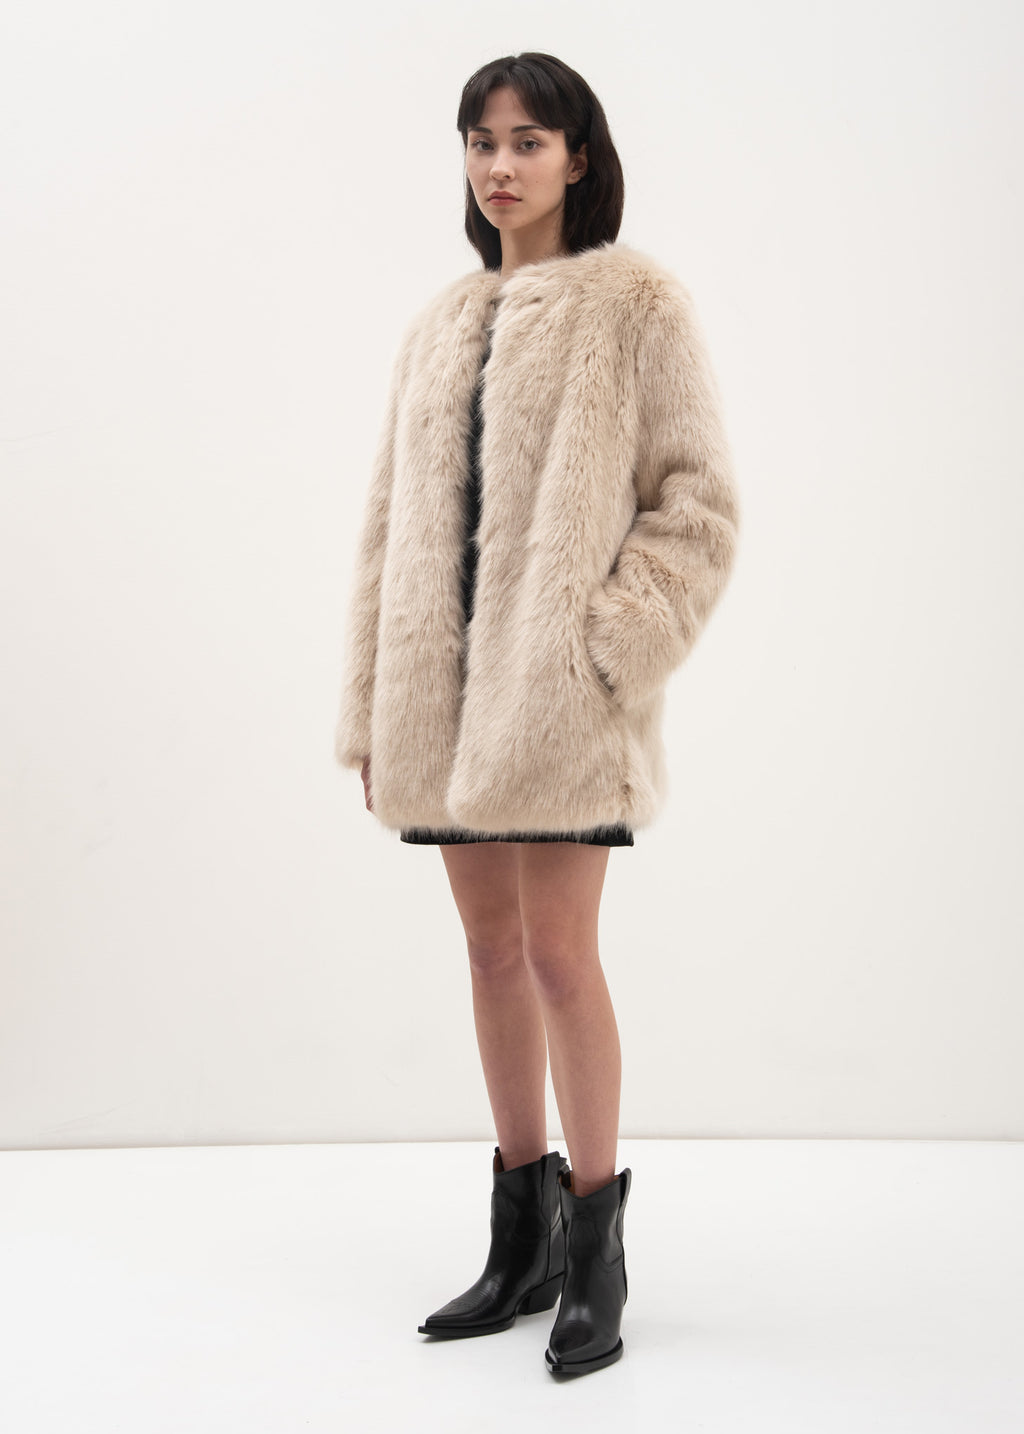 Oatmeal Faux Fur Coat